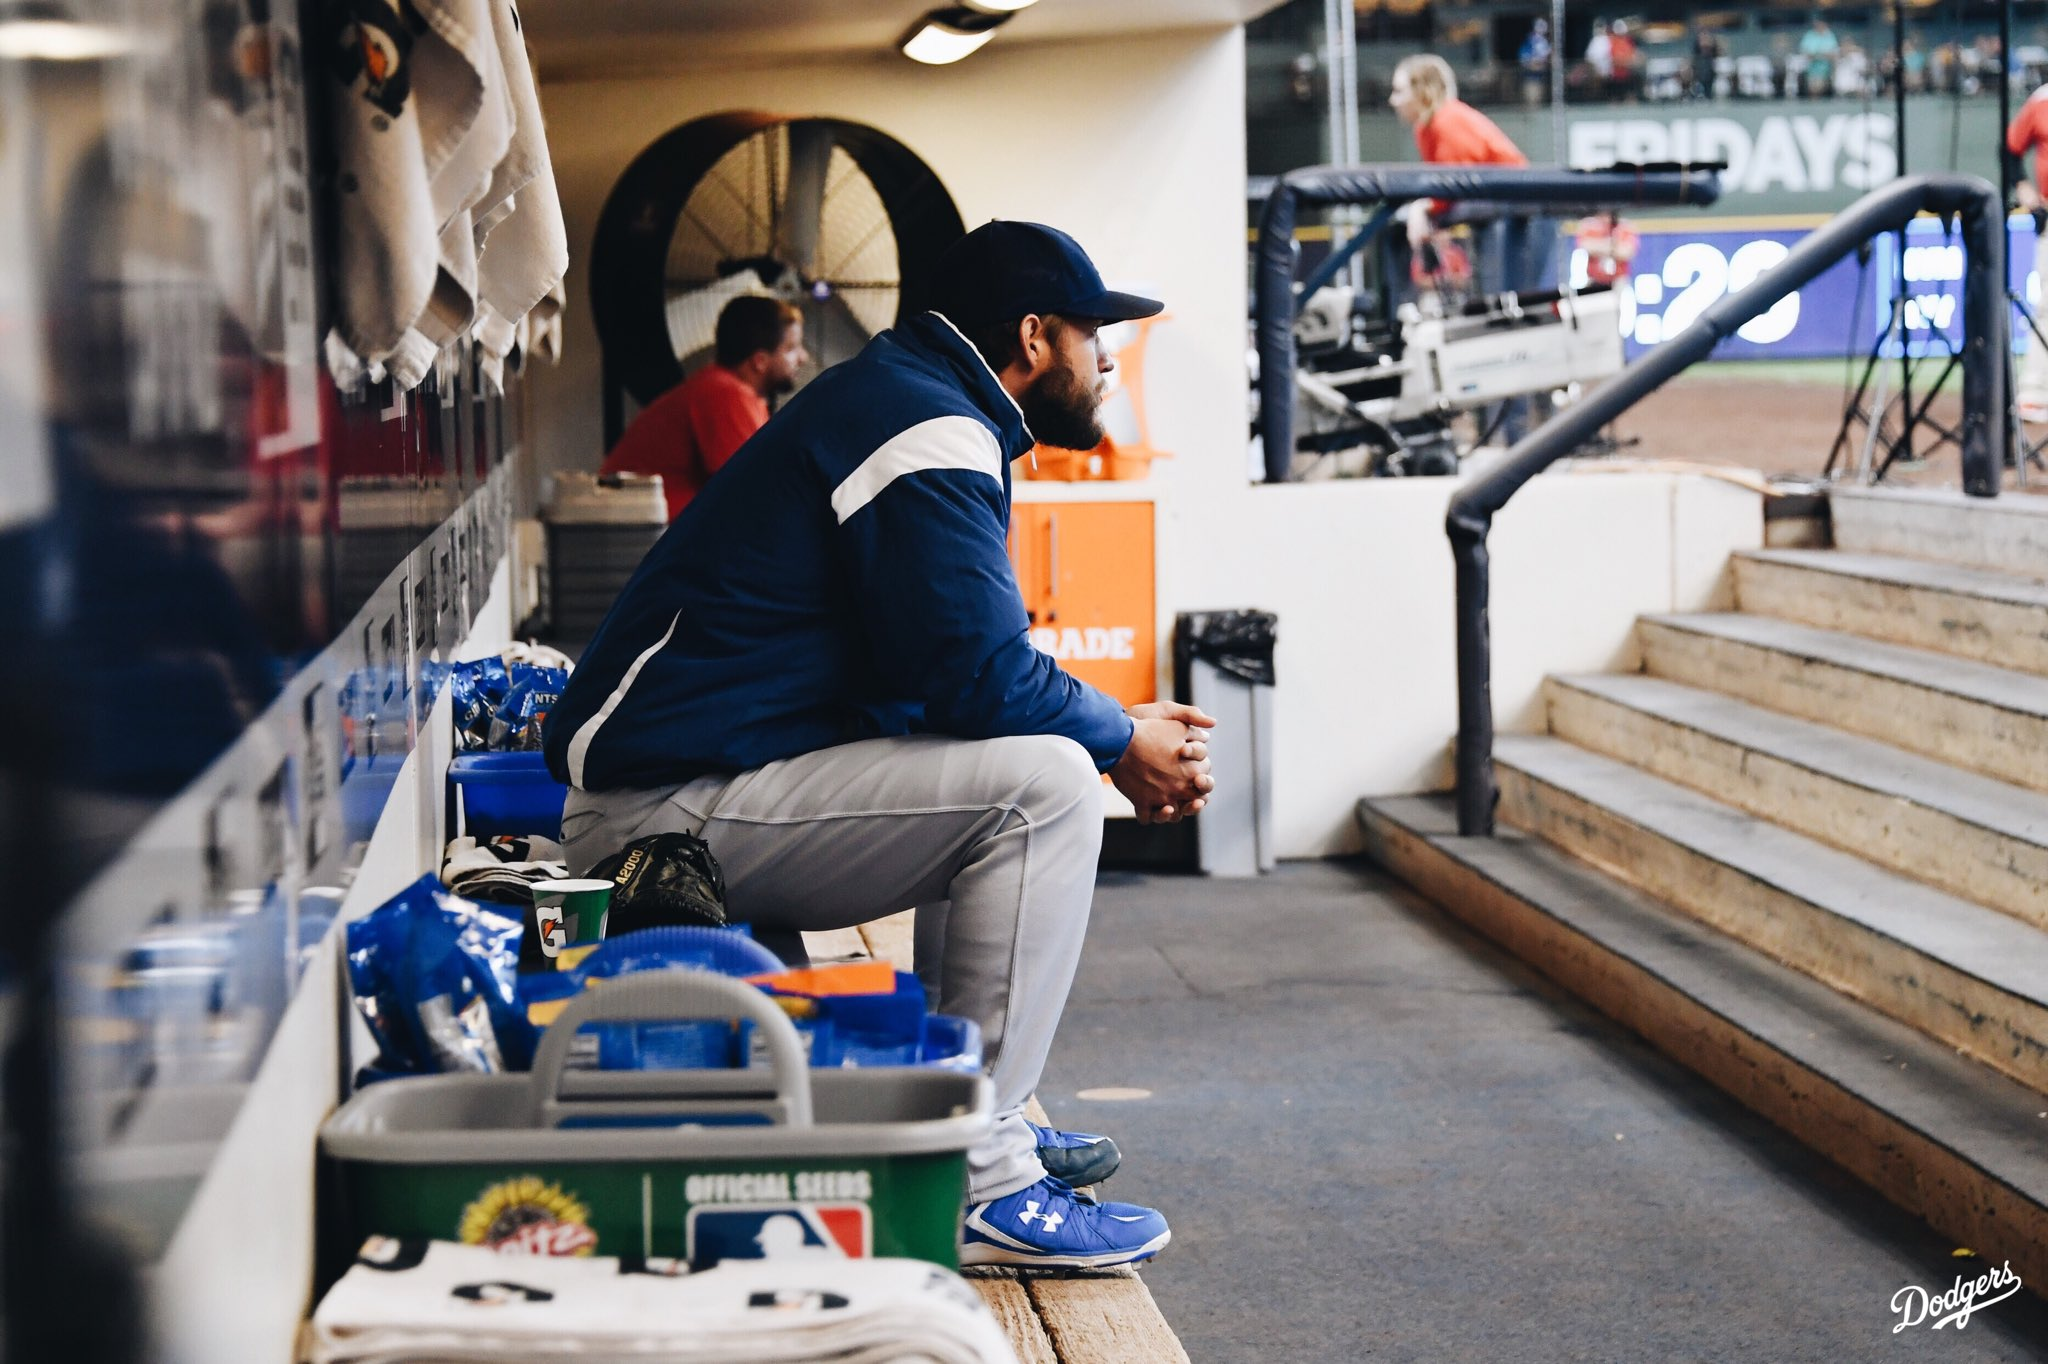 Almost time. #Dodgers https://t.co/GnOMoysO5k